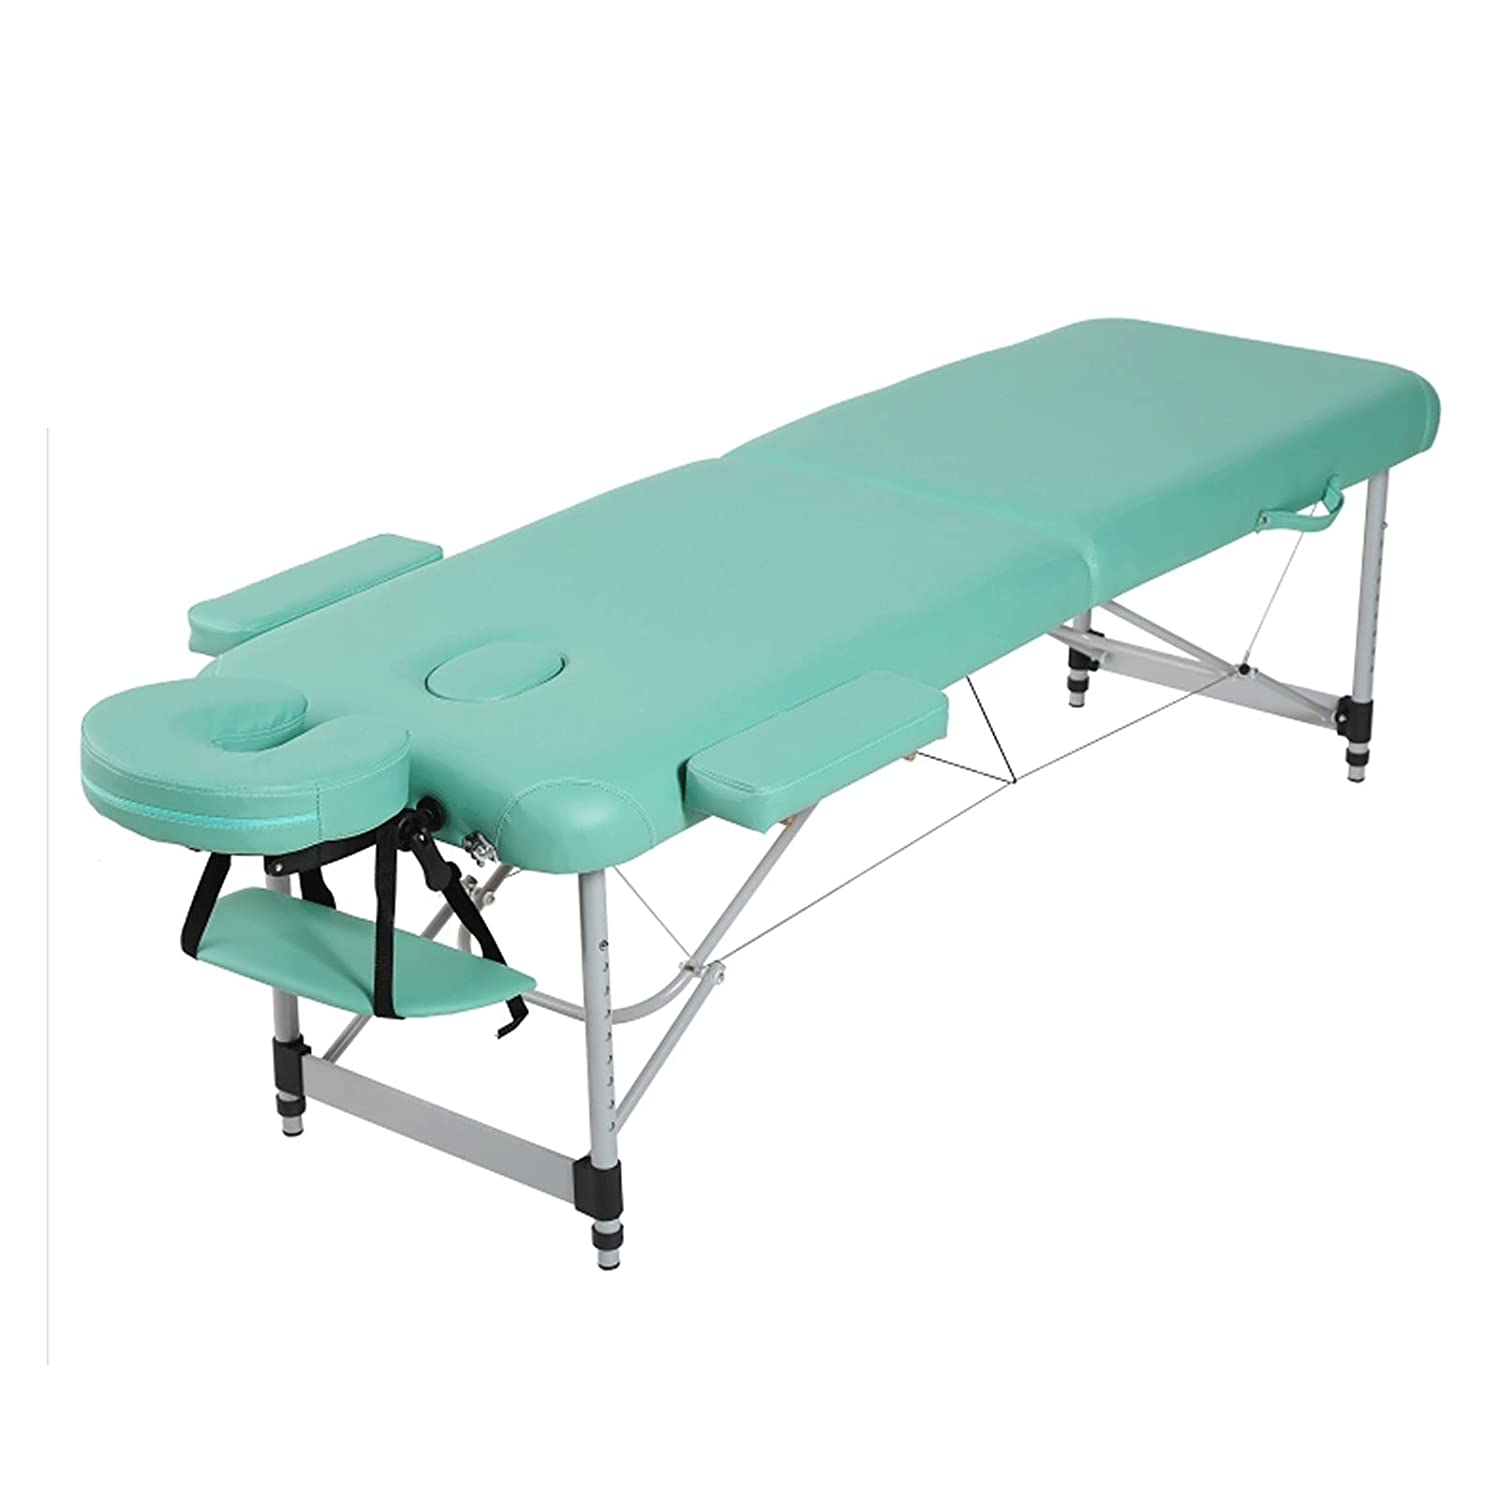 Massage Max 80% OFF Table Portable Outlet sale feature Bed 2 Inch Folding 73.2 Aluminium